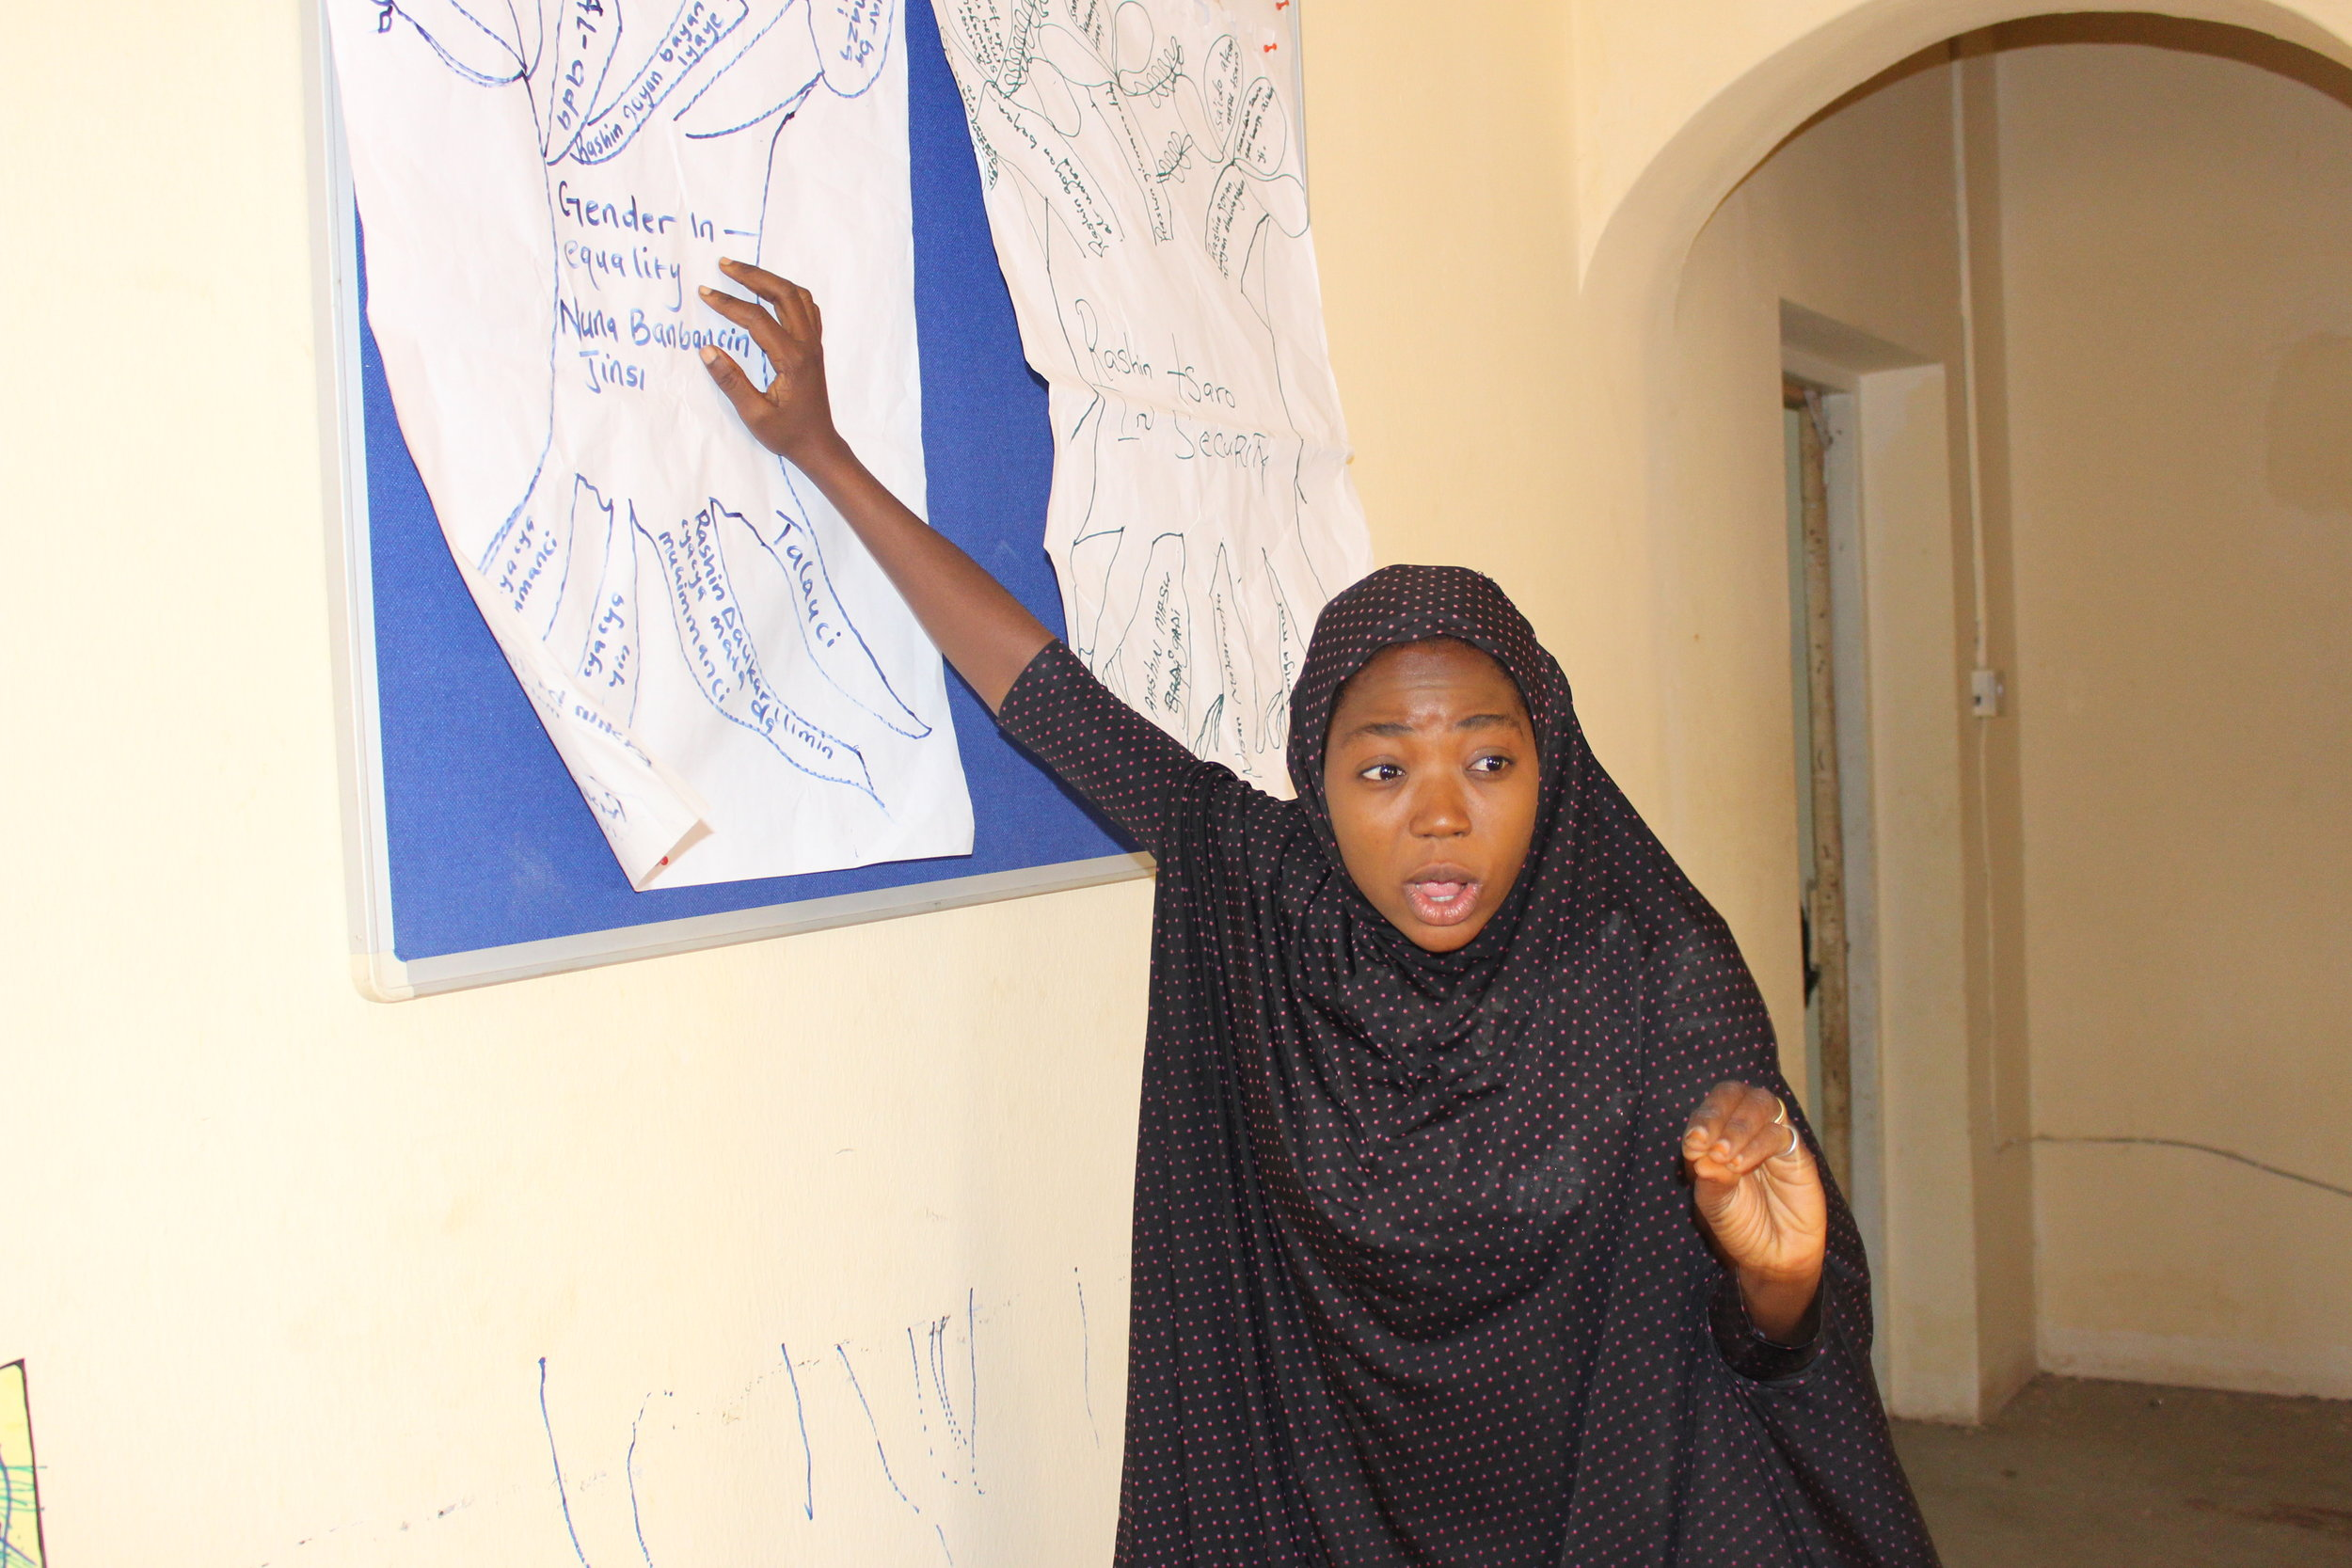 A girl presenting during advocacy training.